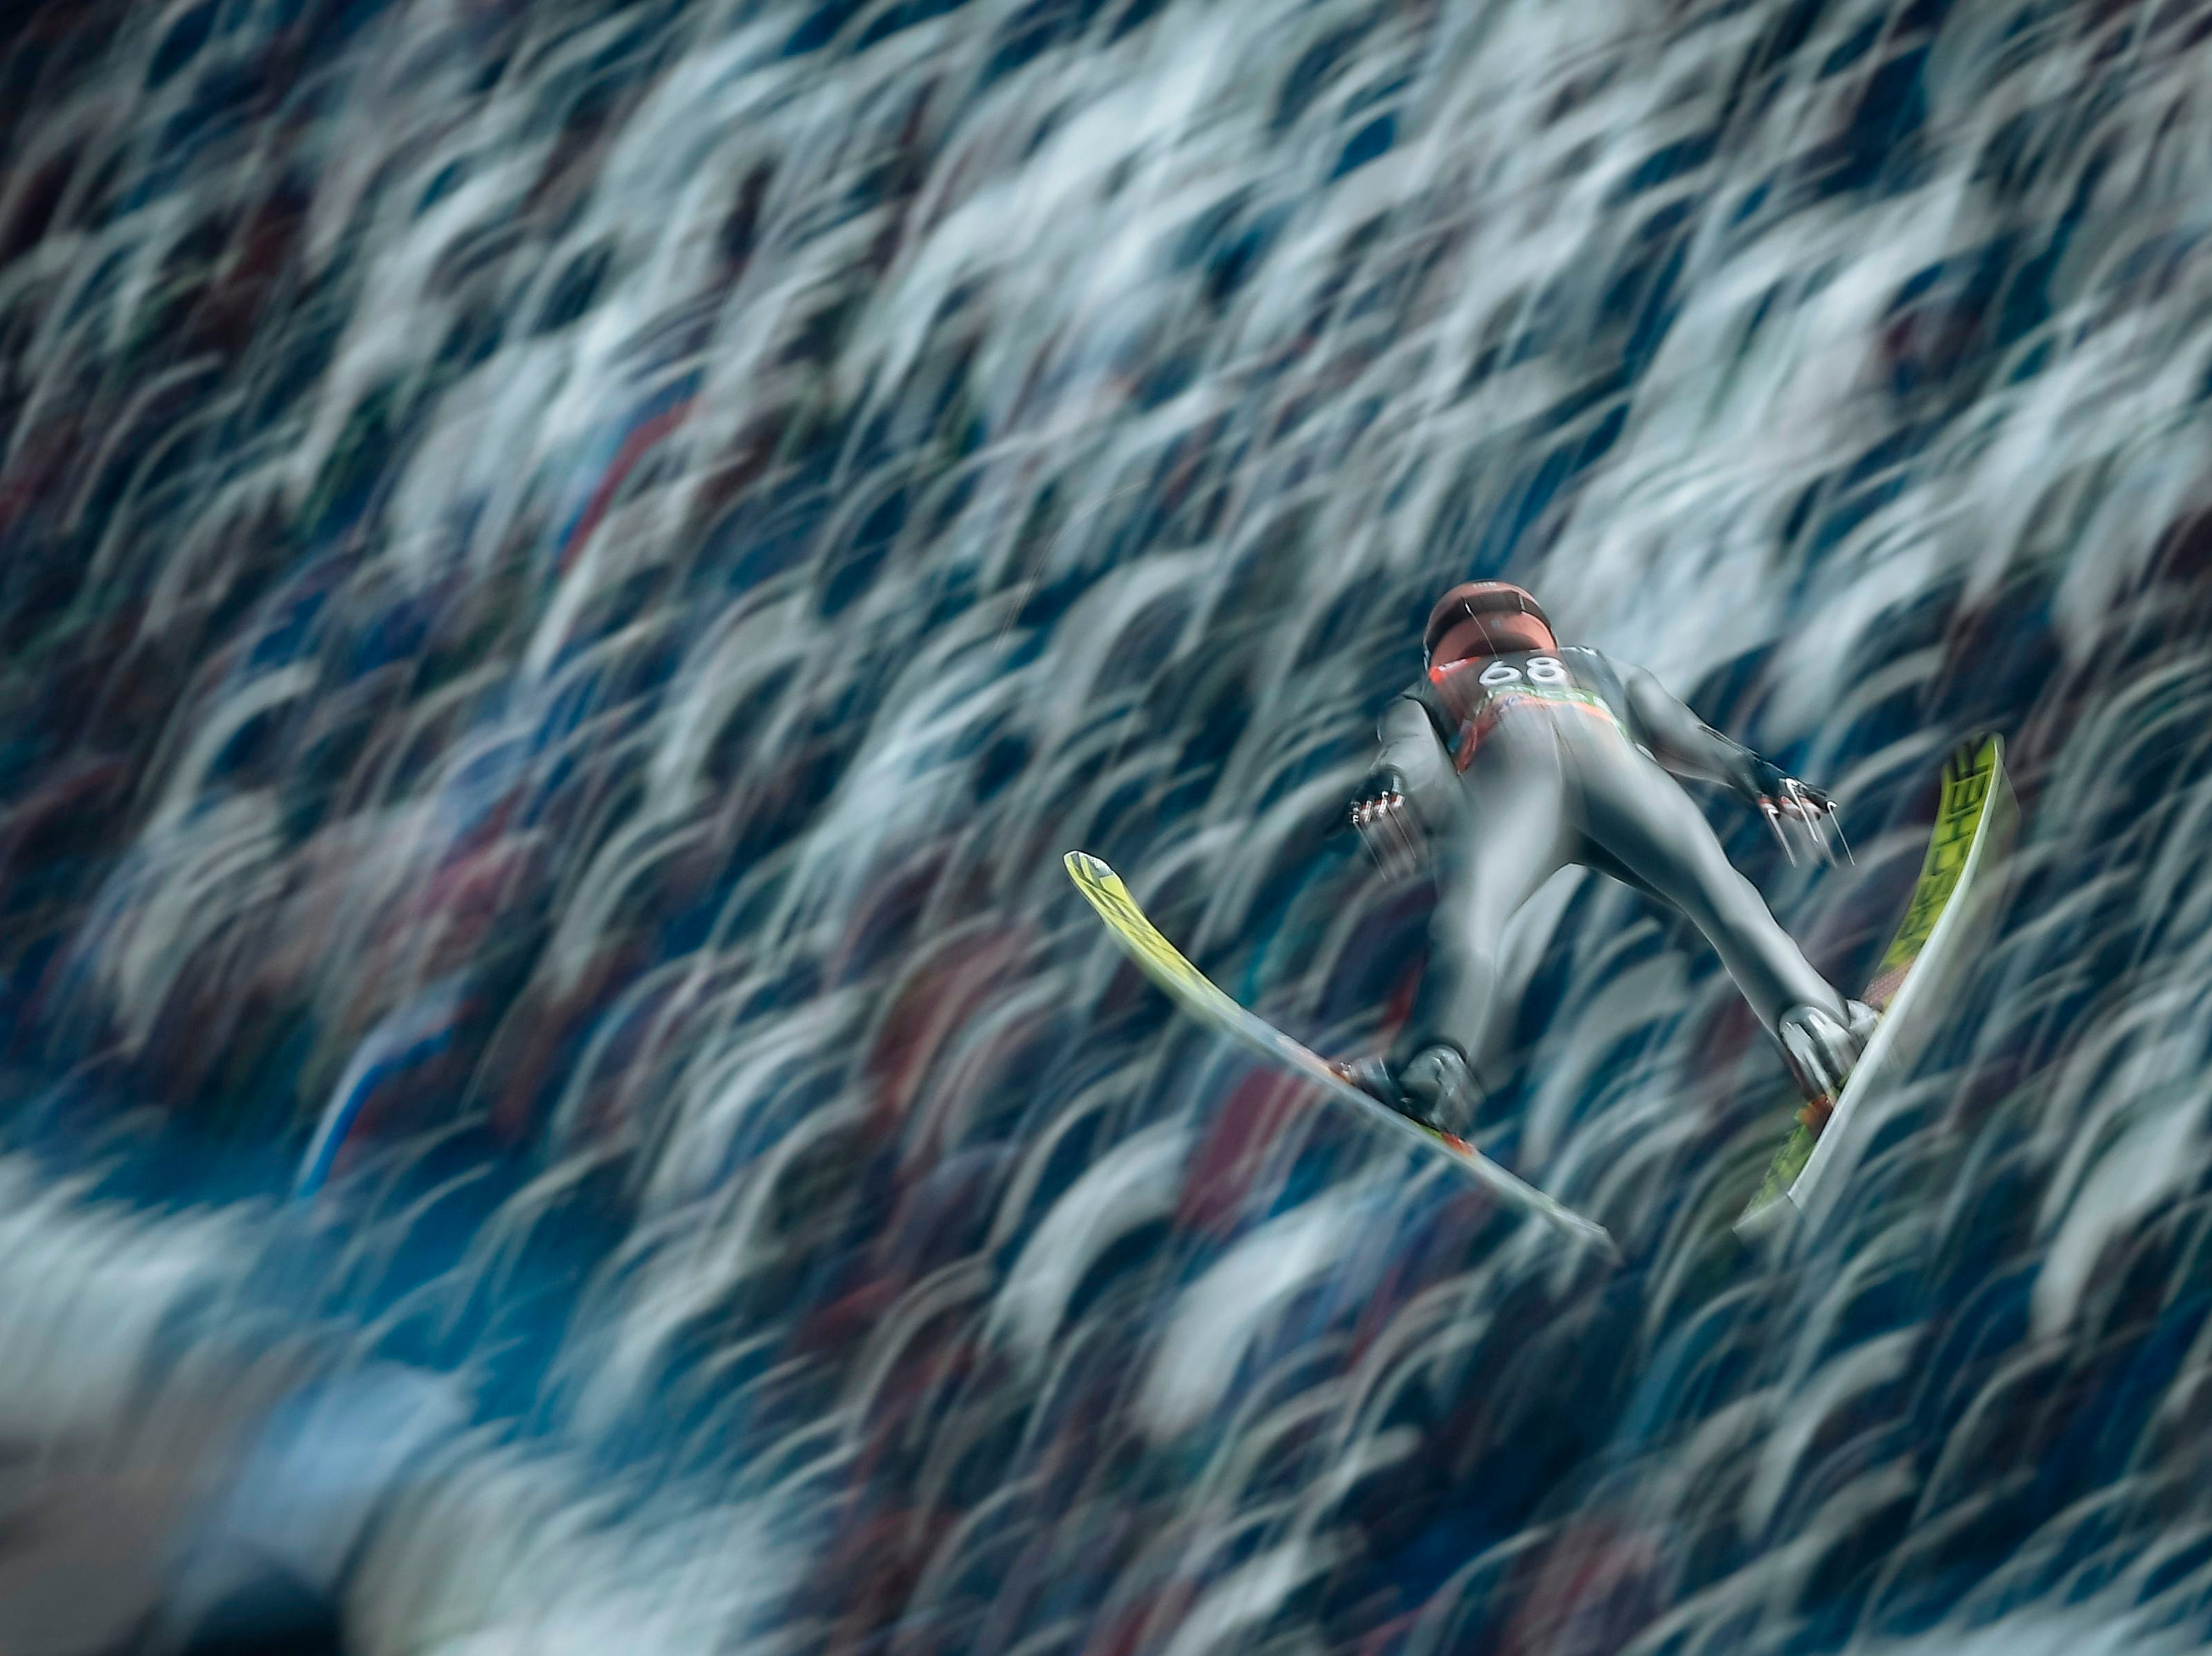 Stefan Kraft of Austria competes during the qualifying round of the FIS Ski Jumping World Cup Men's Flying Hill Individual competition in Planica, Slovenia, on March 21, 2019.